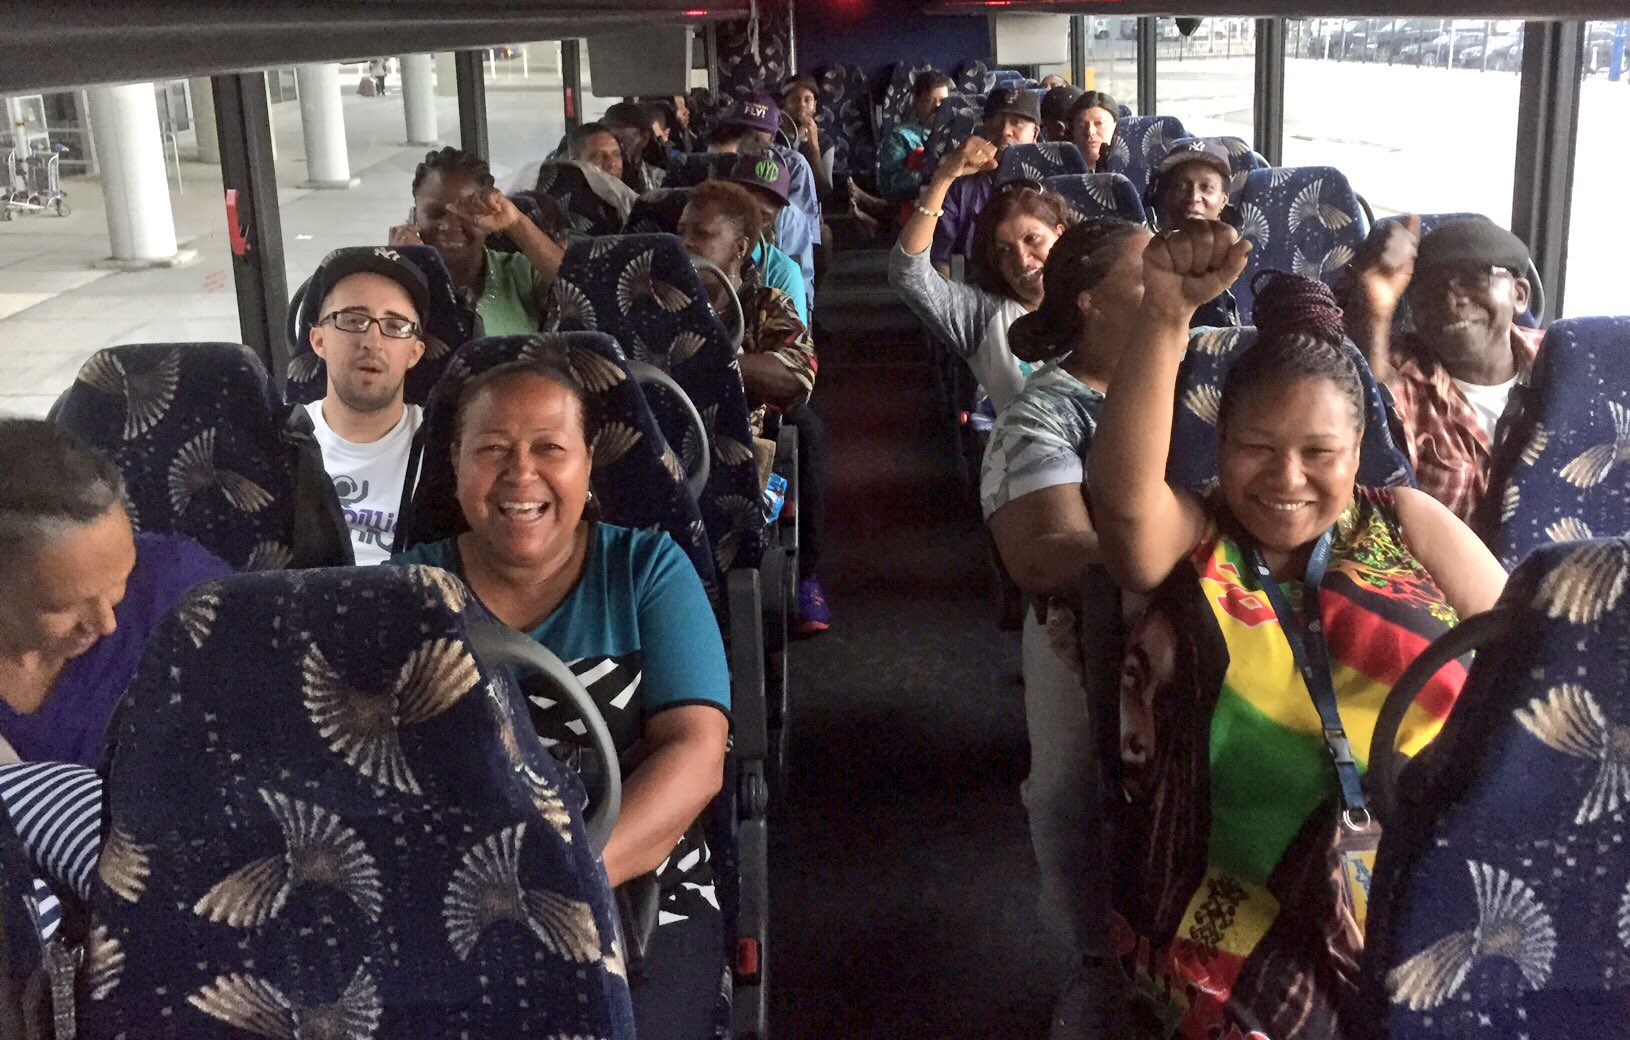 New York is rolling deep. Airport workers from JFK are on their way to the #FightFor15 National Convention! ✊✊✊✊✊ https://t.co/xucbCdCzRu